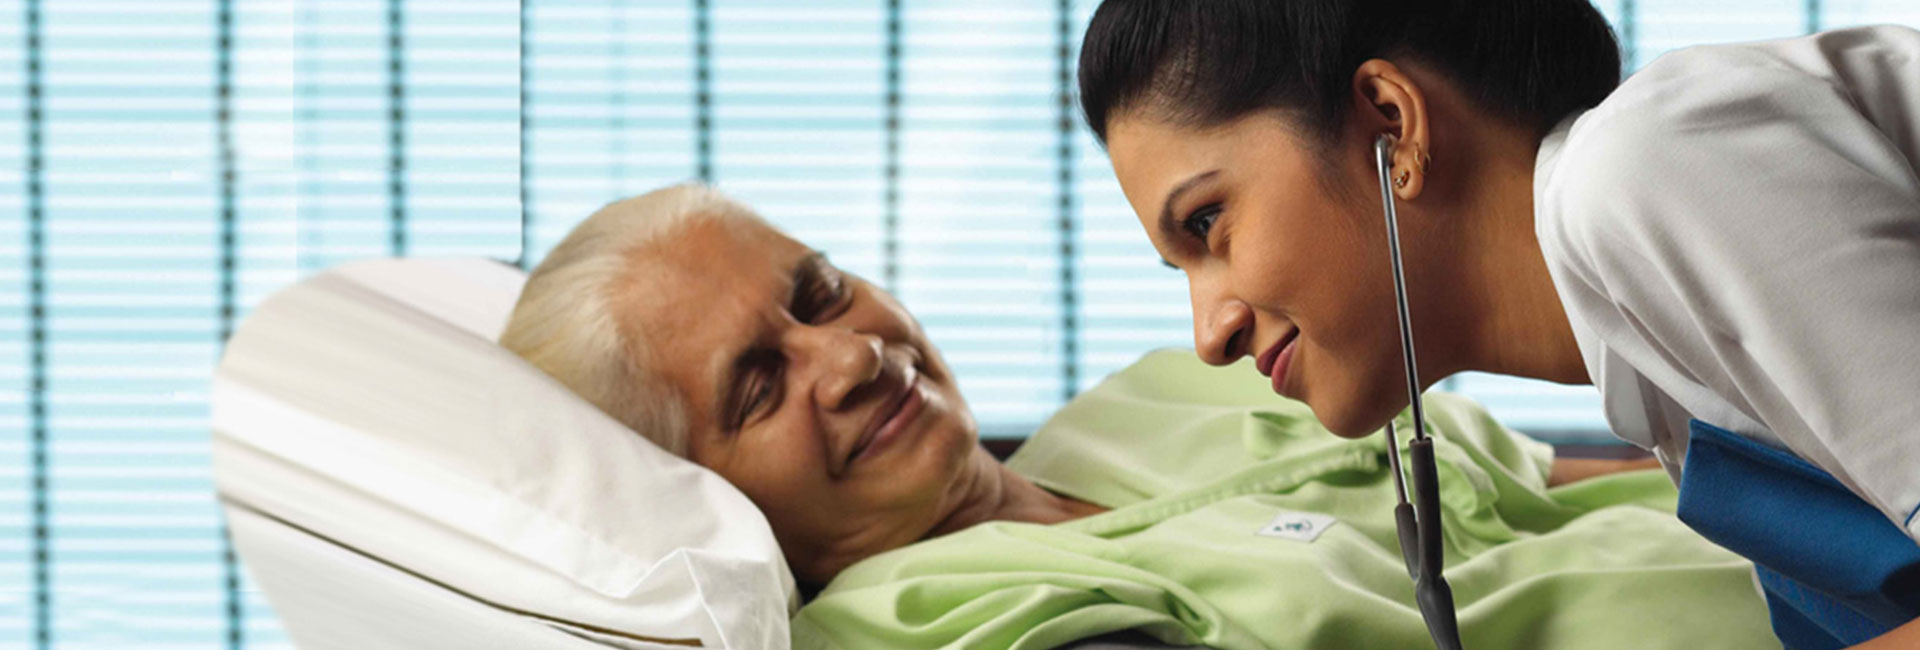 Why Indians are choosing fundraising for medical bills